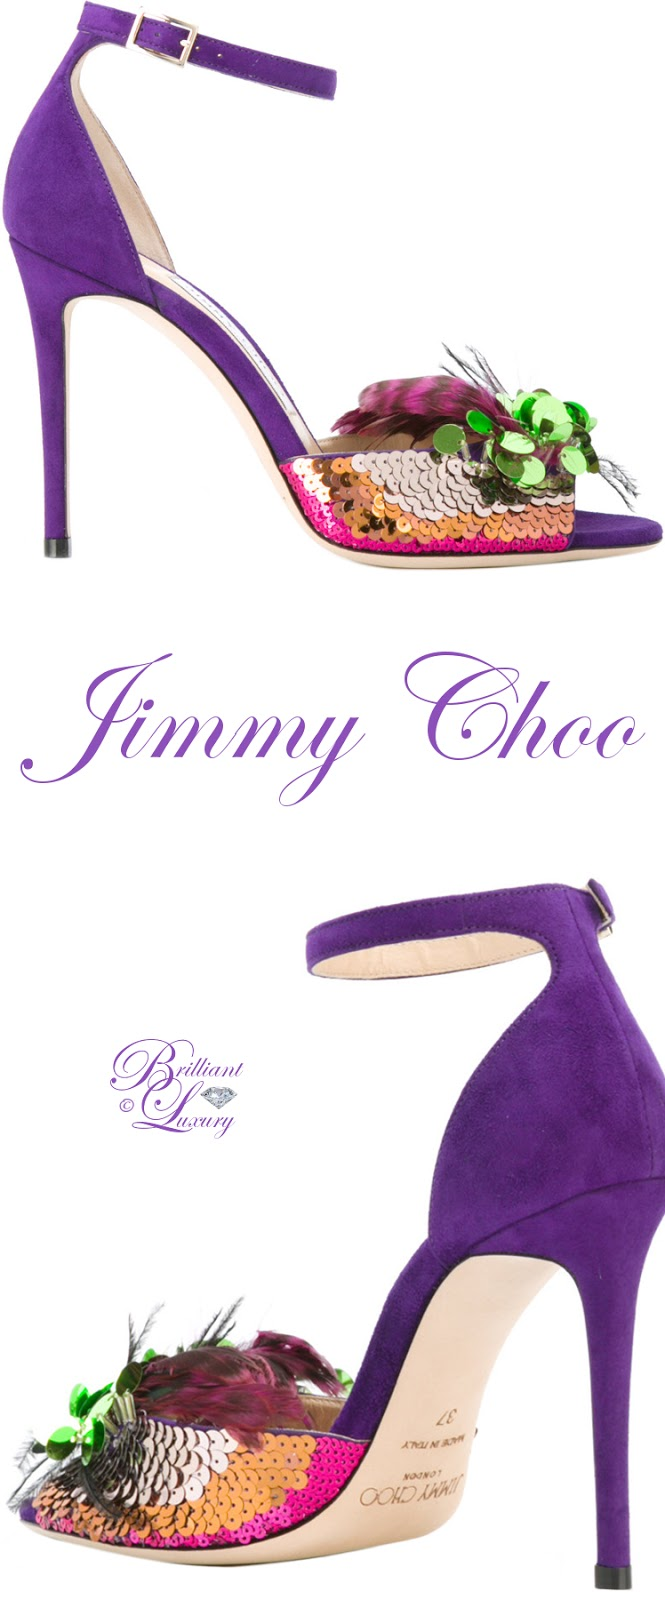 Brilliant Luxury ♦ Jimmy Choo Annie Sandals